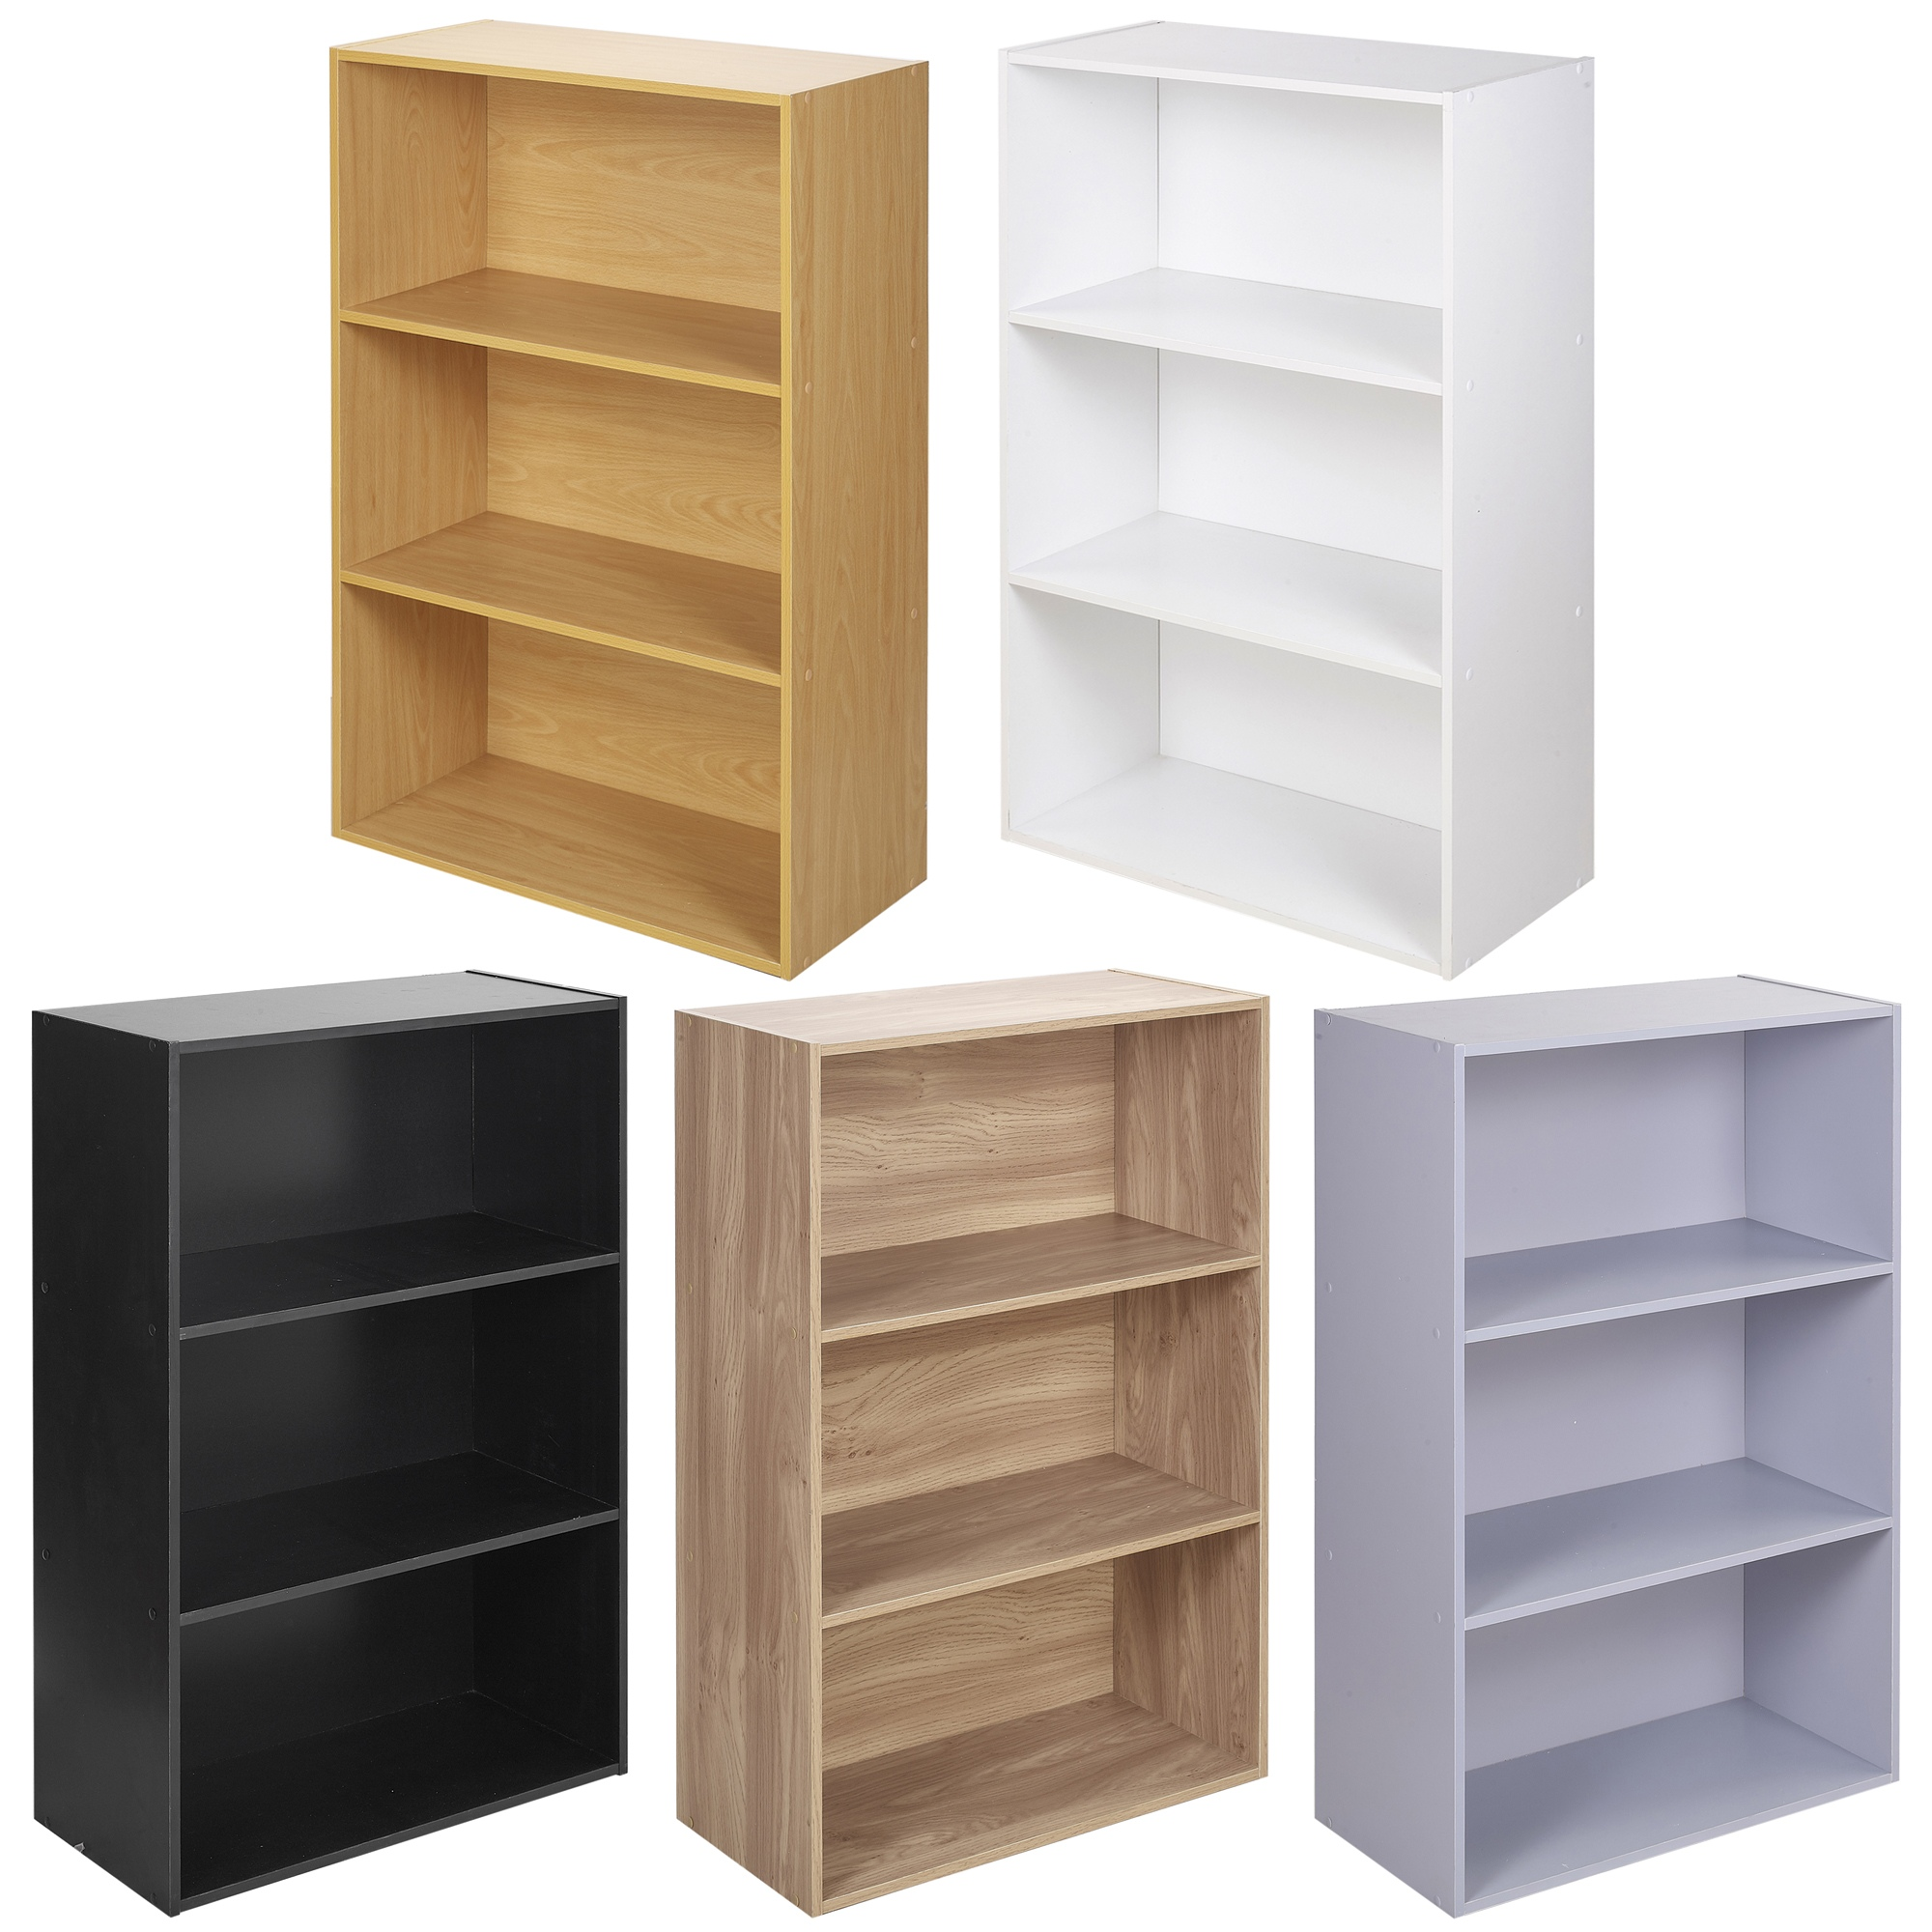 Details about Wide 3 Tier Book Shelf Deep Bookcase Storage Display Cabinet  Furniture Decor NEW